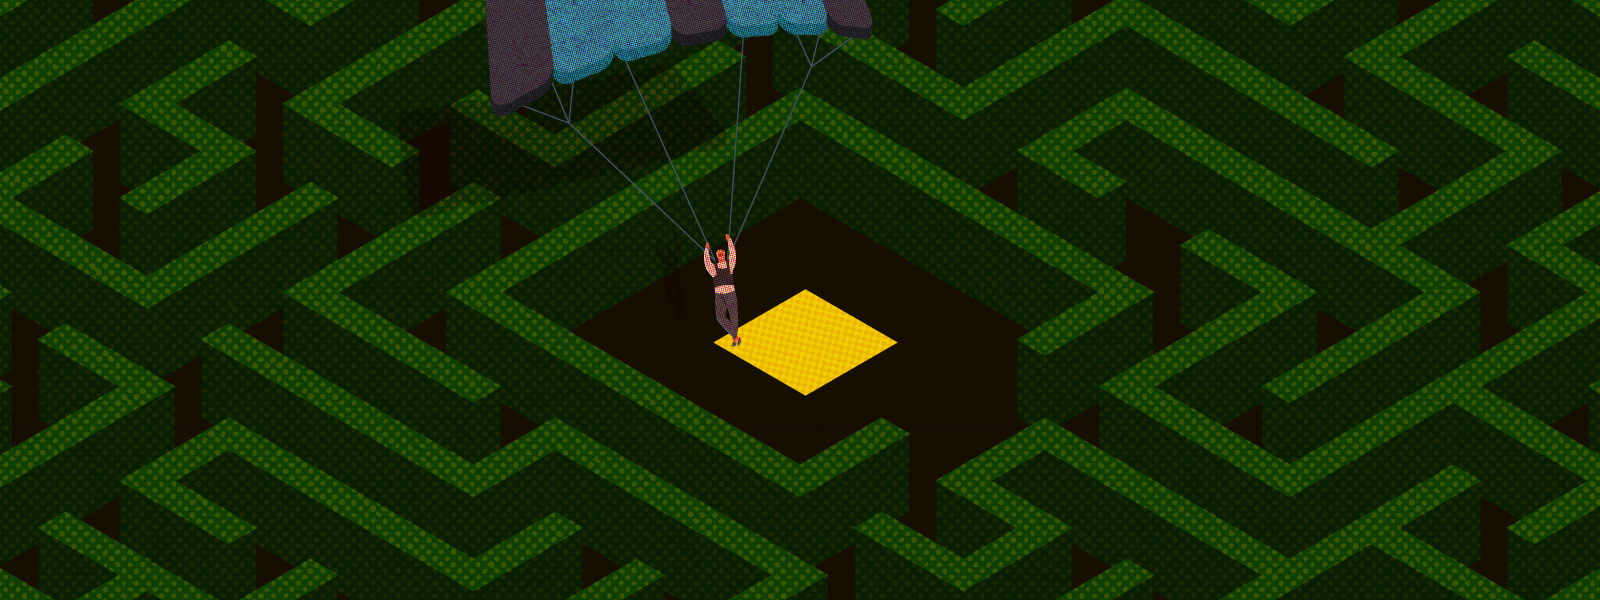 Illustration of a white person parachuting into the center of the maze.